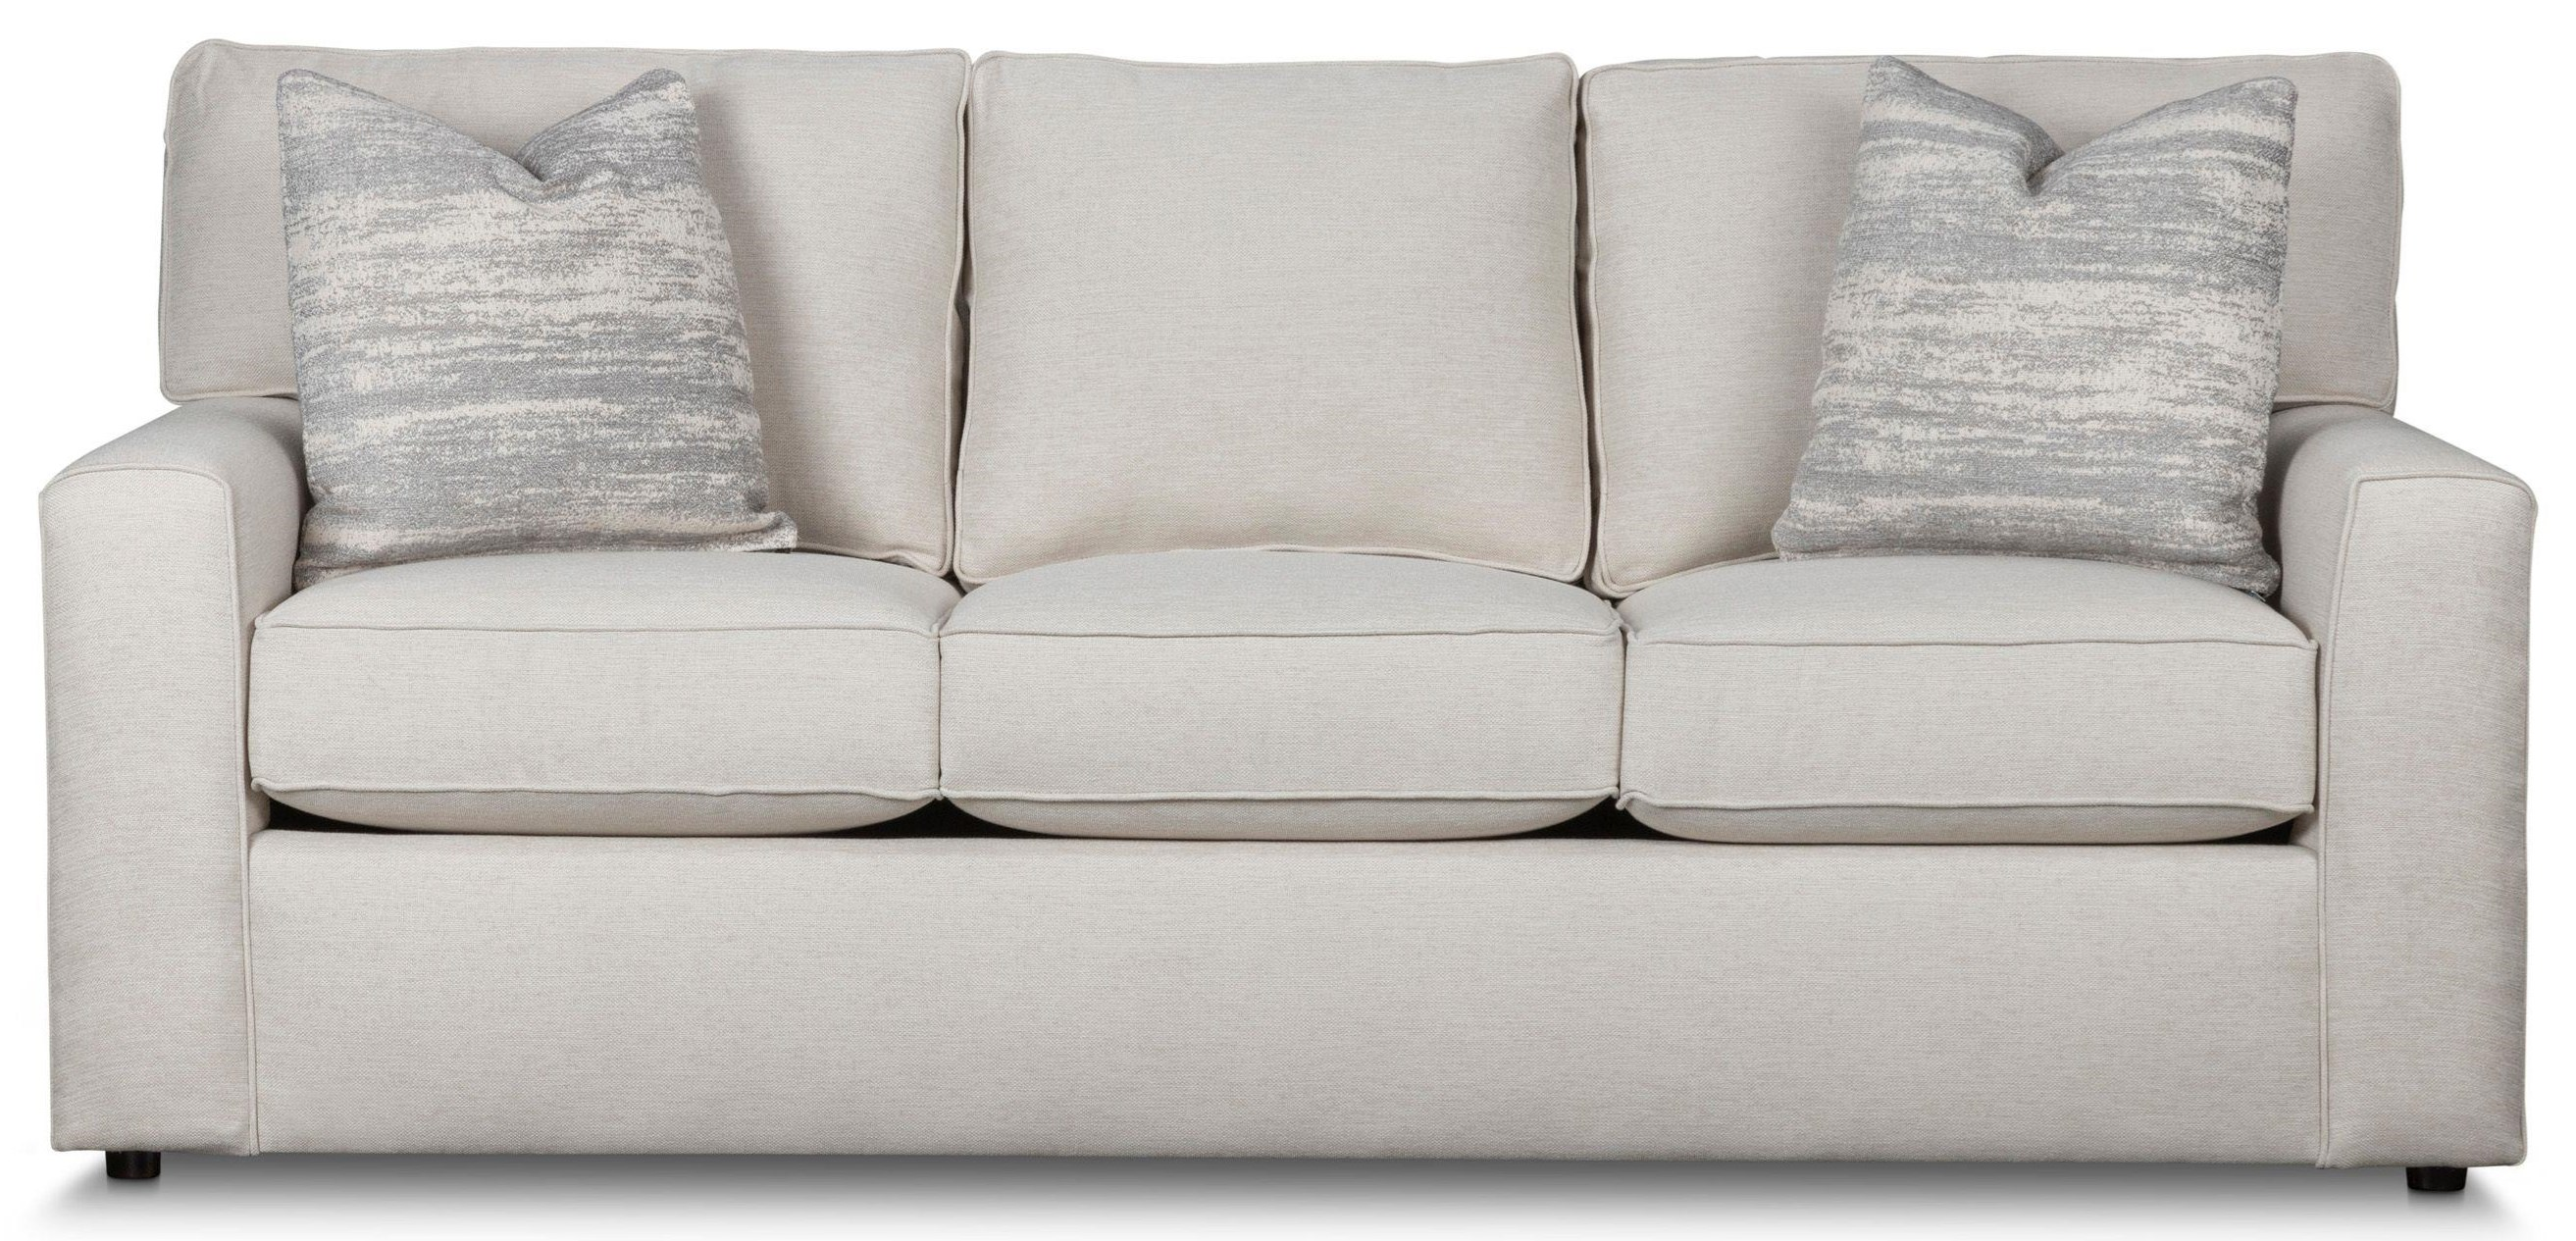 Leigh Upholstered Sofa by Stone & Leigh Furniture at Baer's Furniture